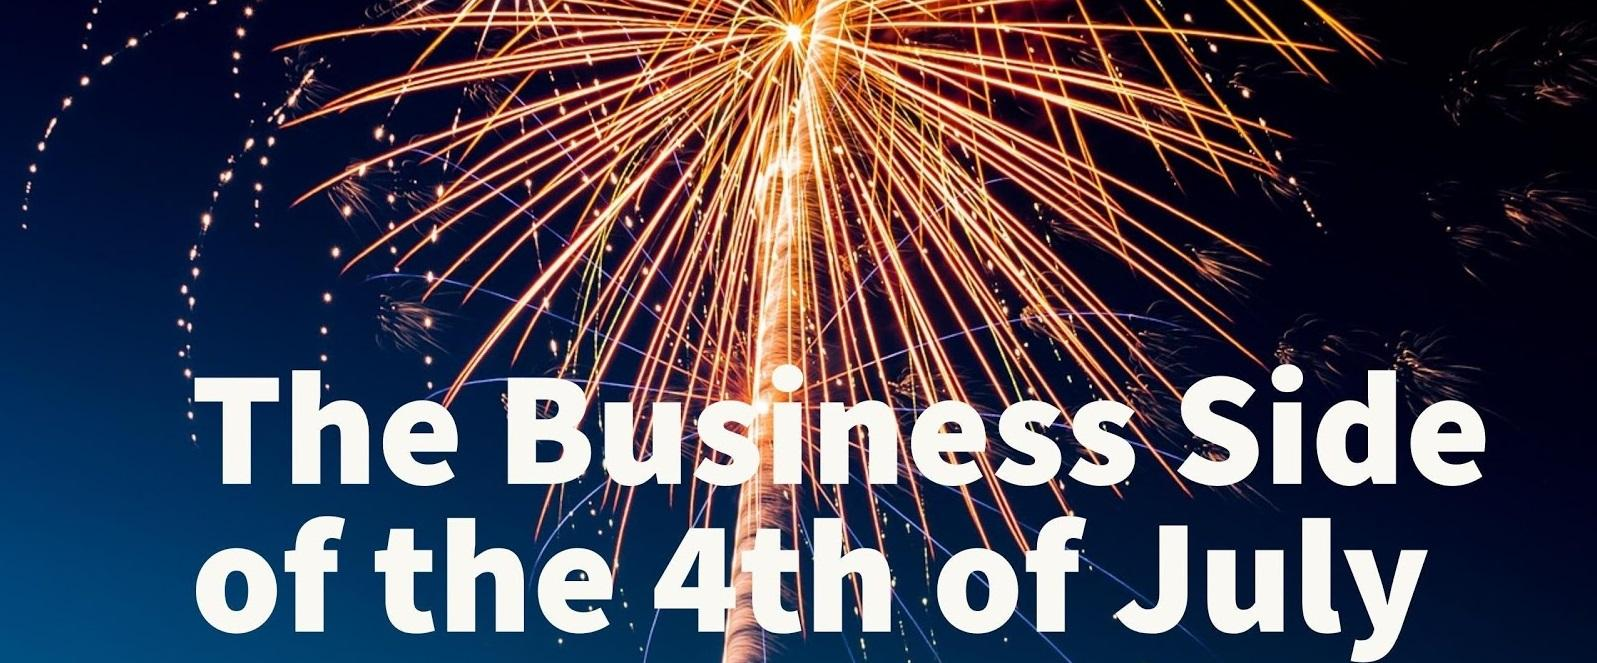 The Business Side of the 4th of July Thumbnail